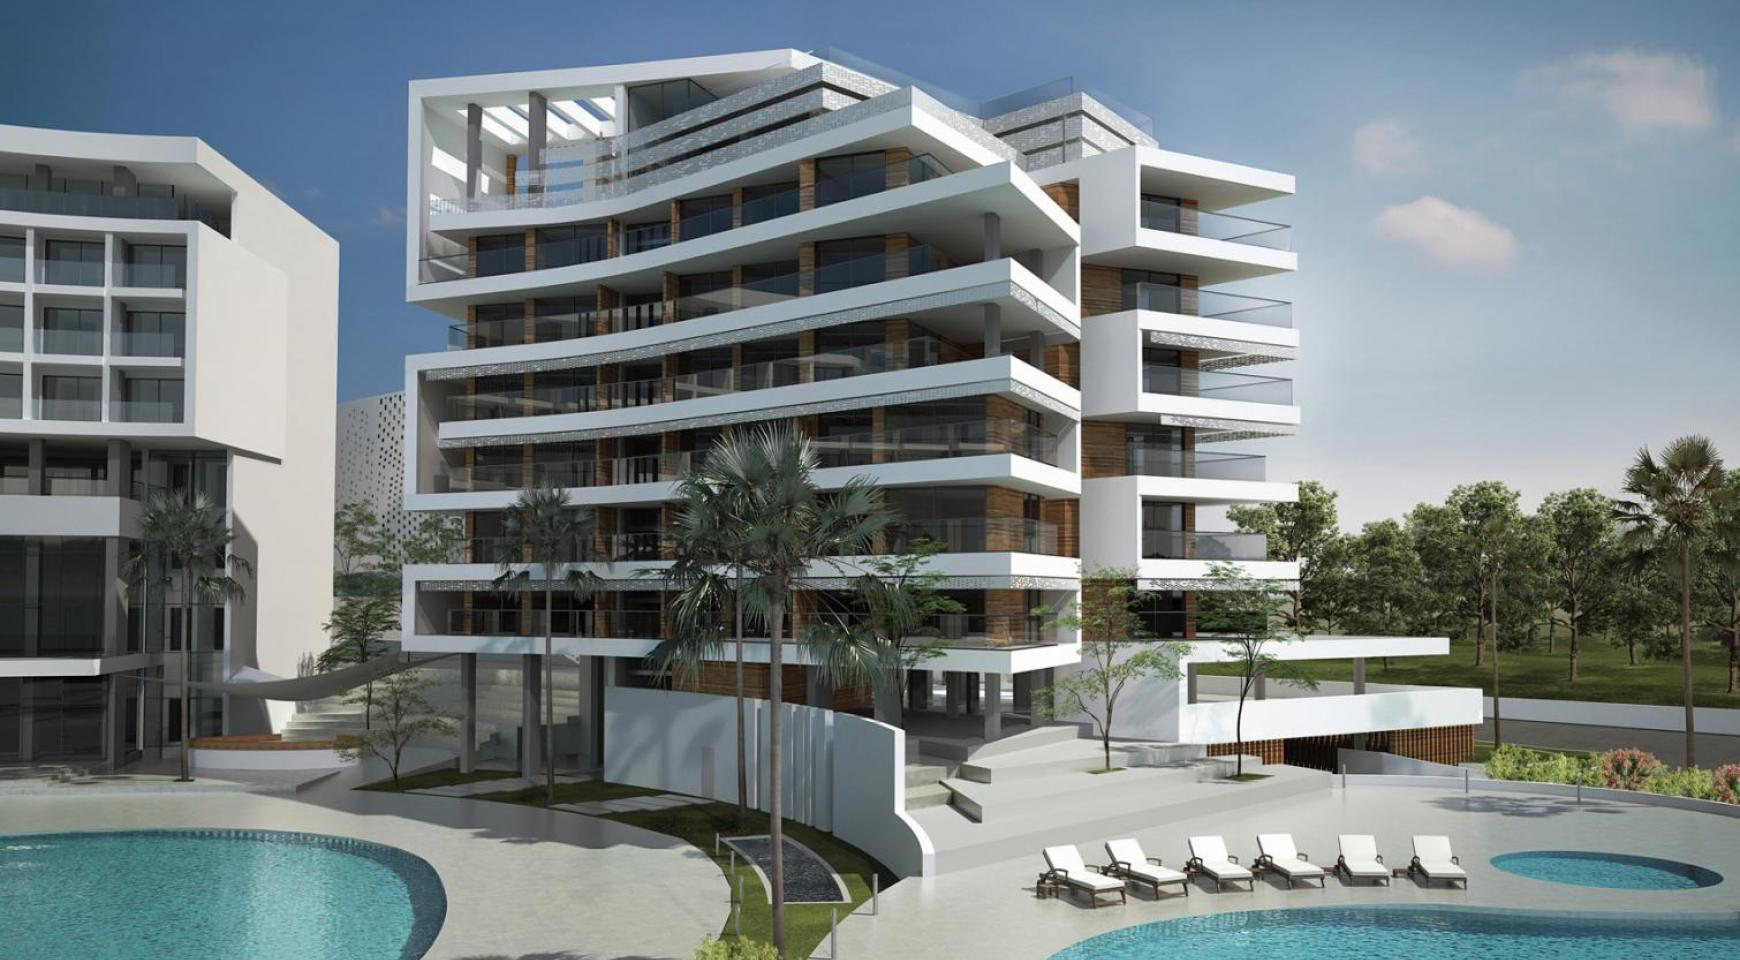 Contemporary 2 Bedroom Apartment in a New Complex by the Sea - 2